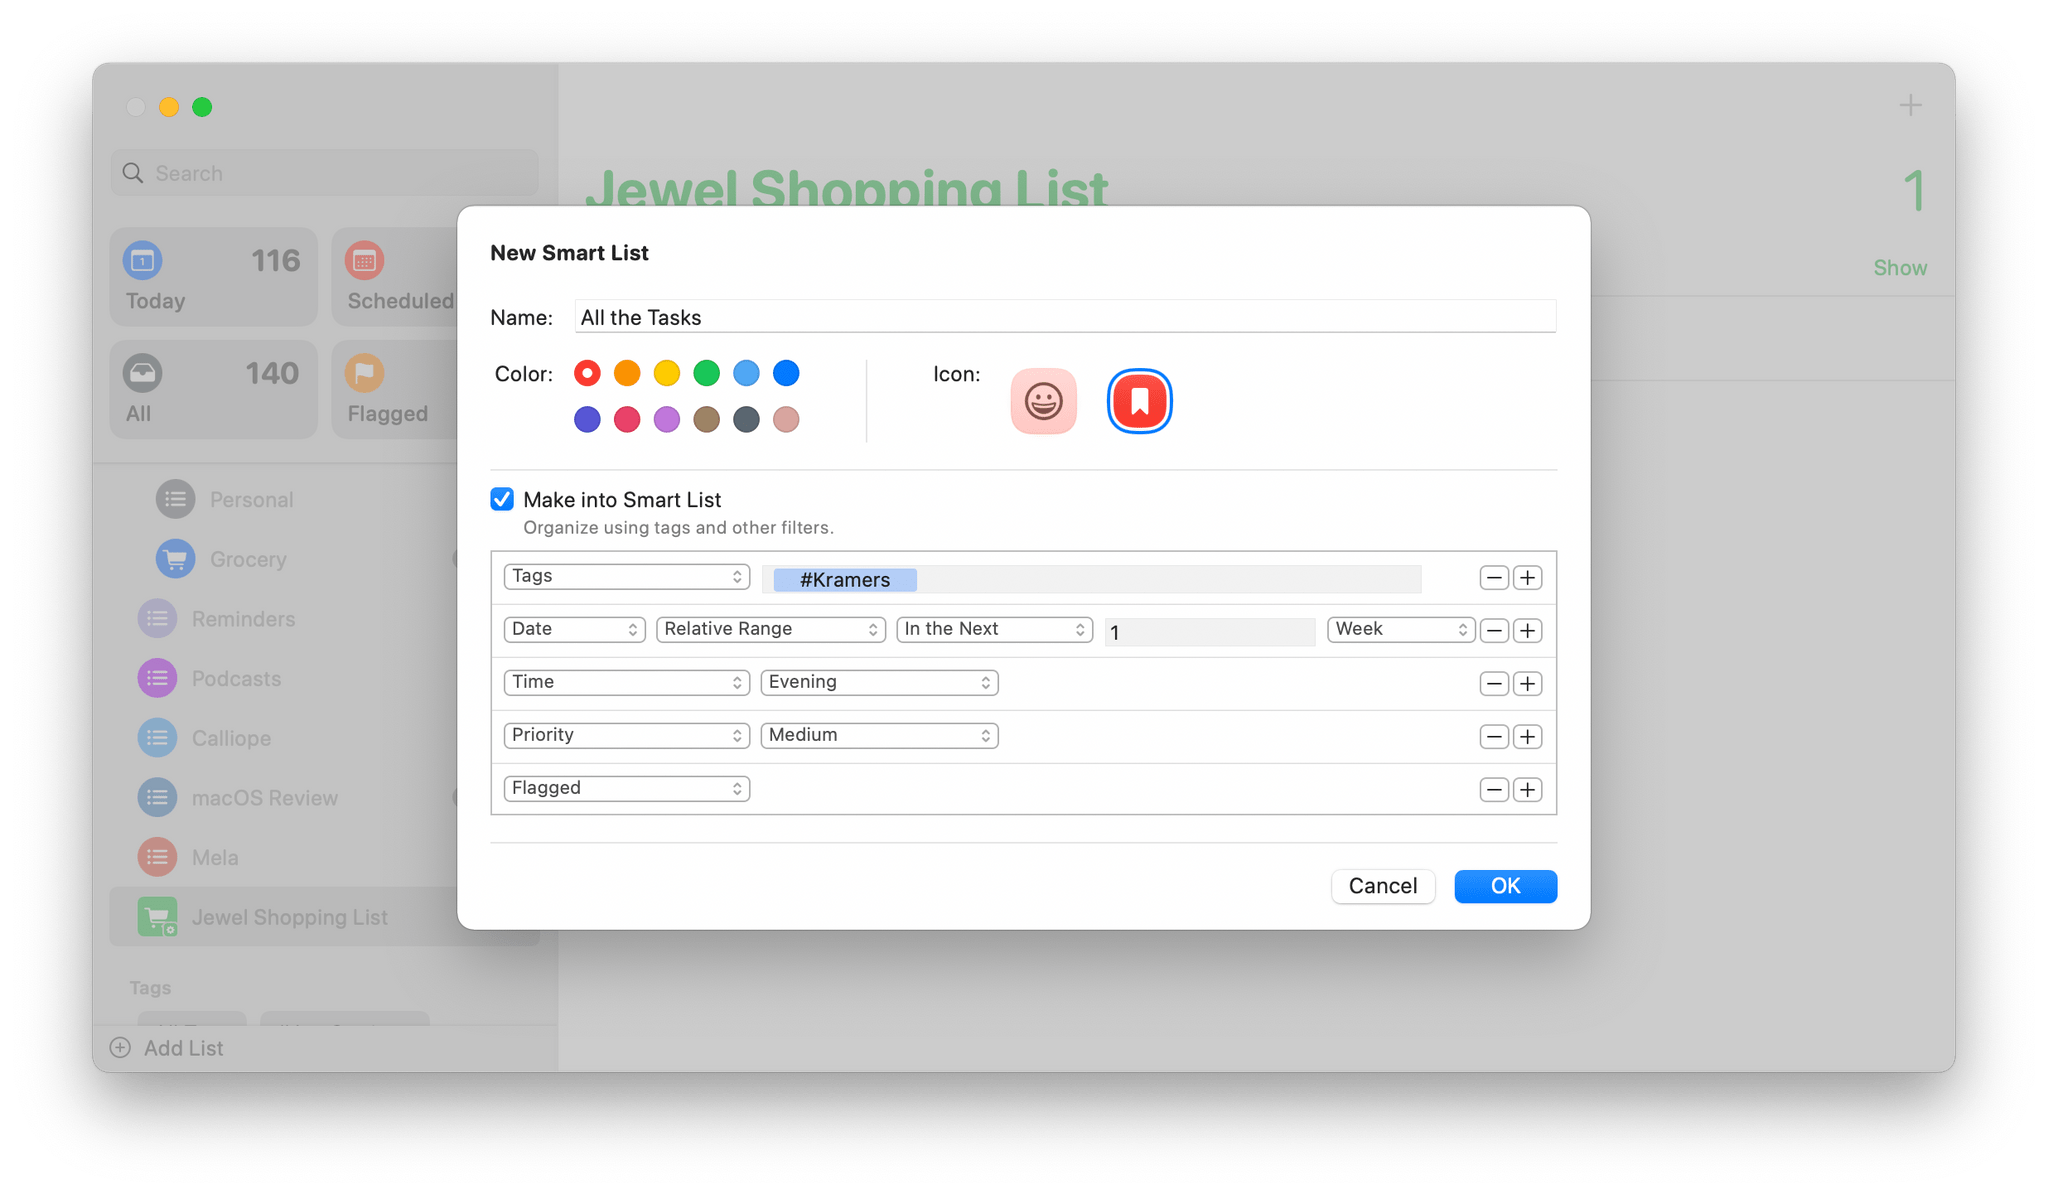 A sampling of the parameters and options available in Smart Lists.